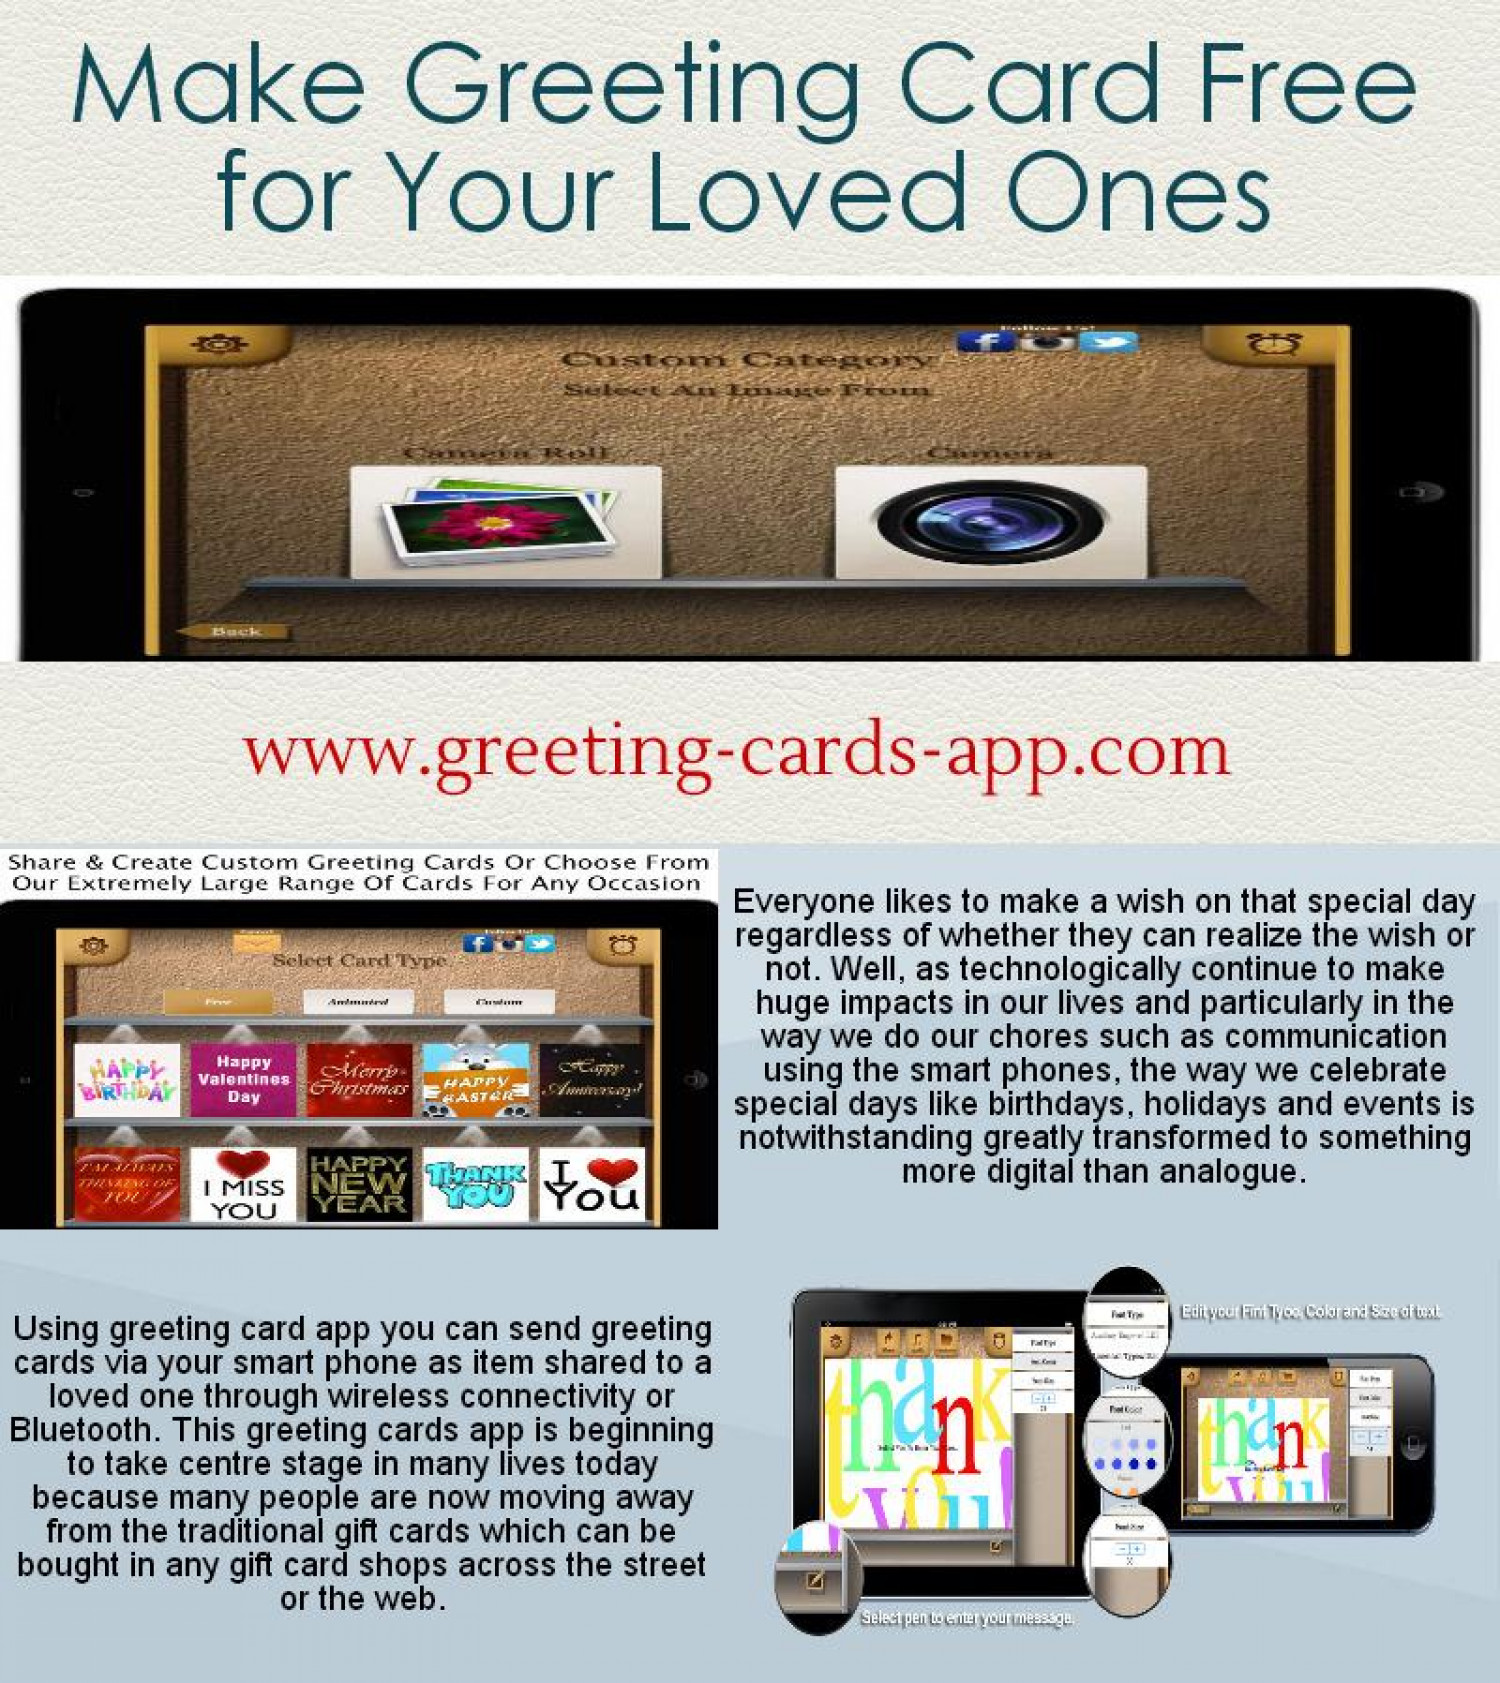 Make Greeting Card Free For Your Loved Ones Visual